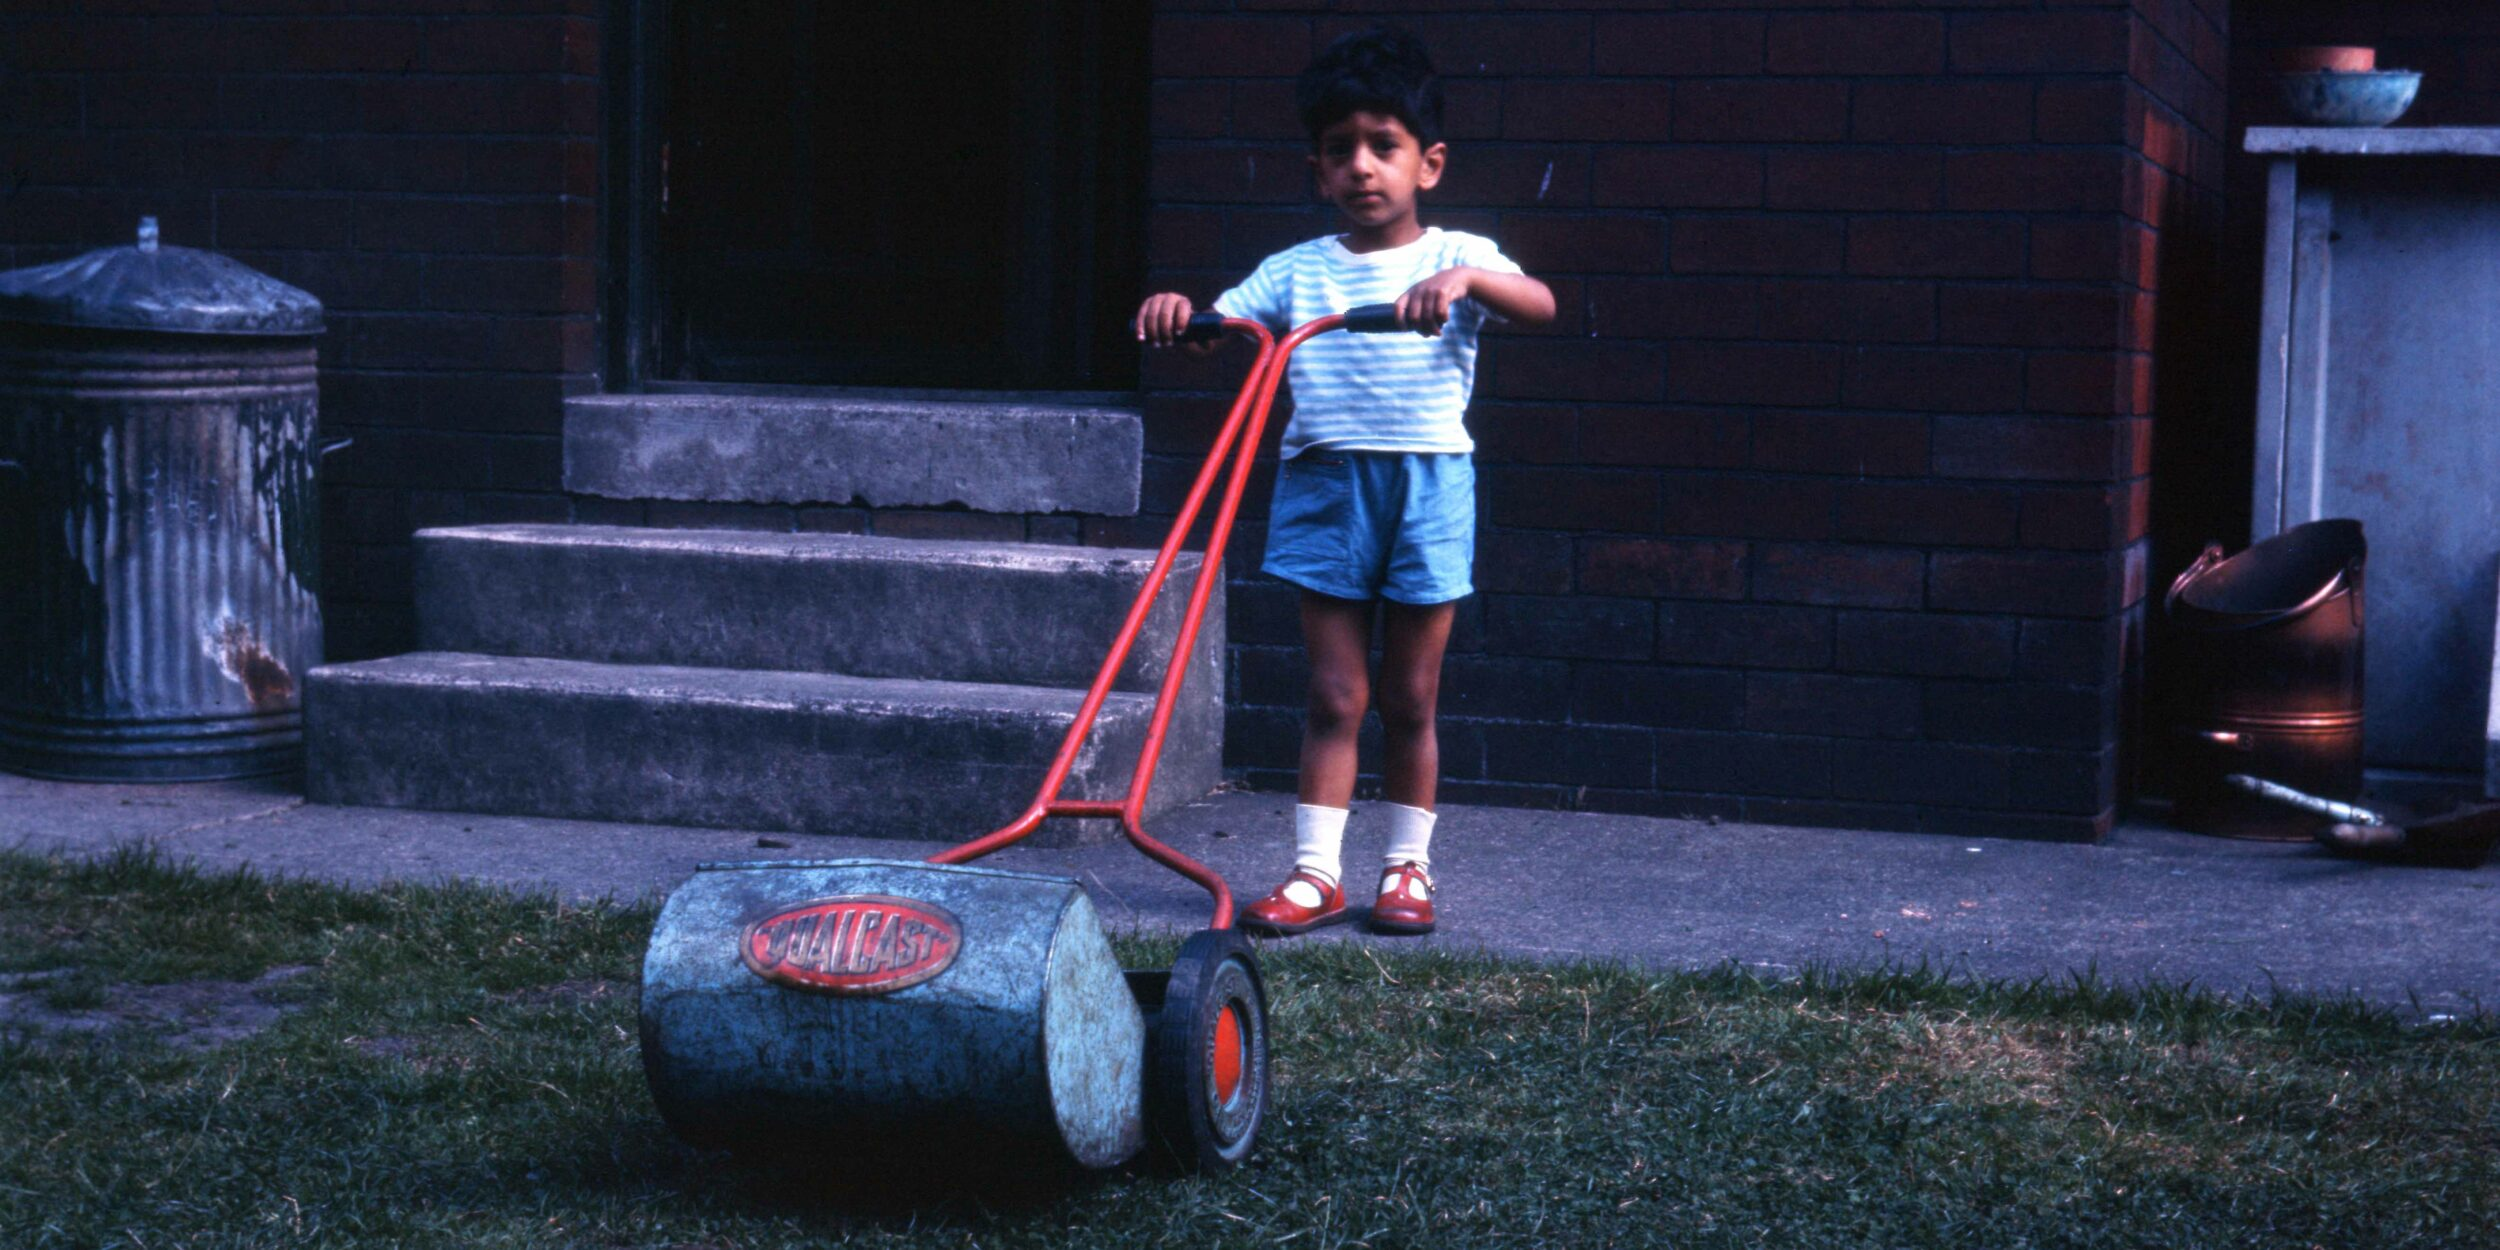 Rajat Jindal as a child in his mother's garden